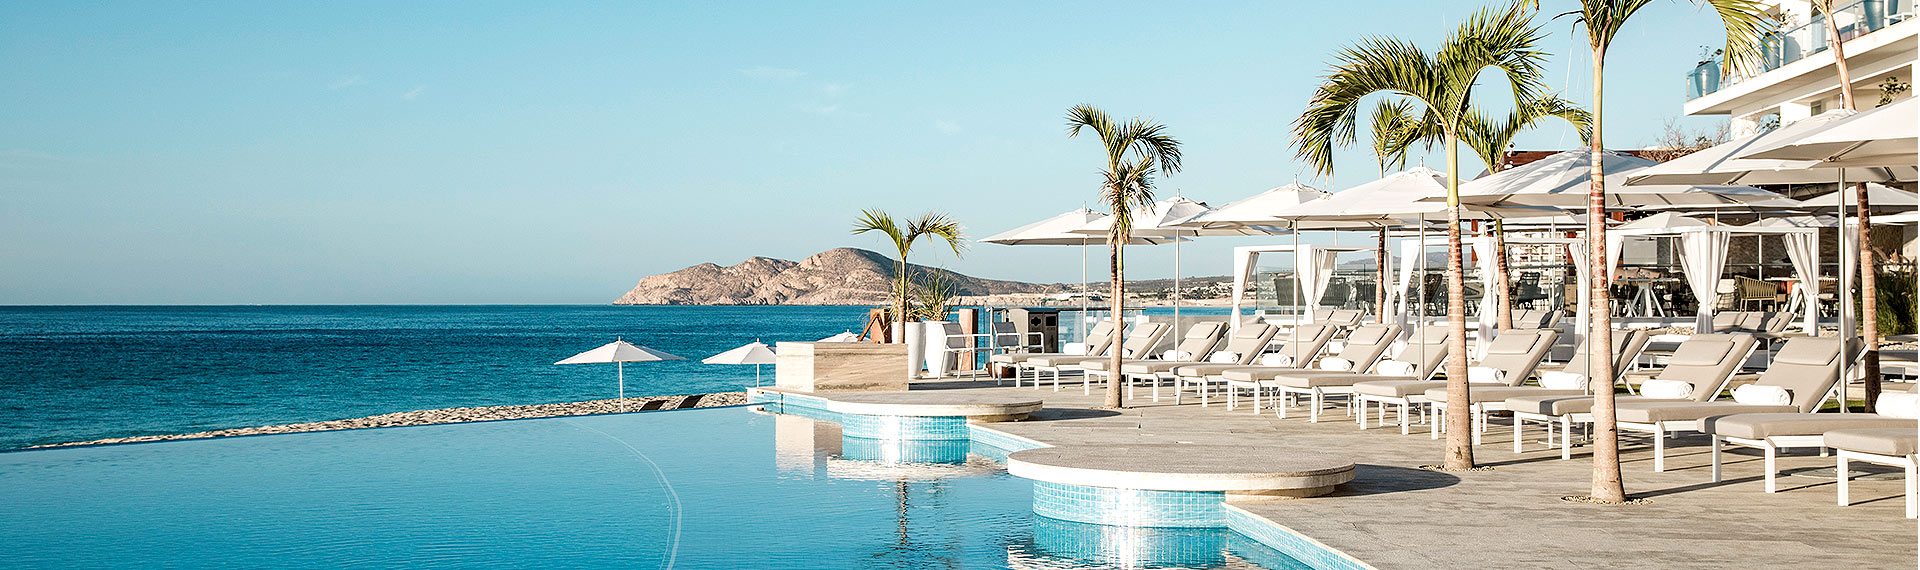 Things to do in Cabo San Lucas in 72 hours